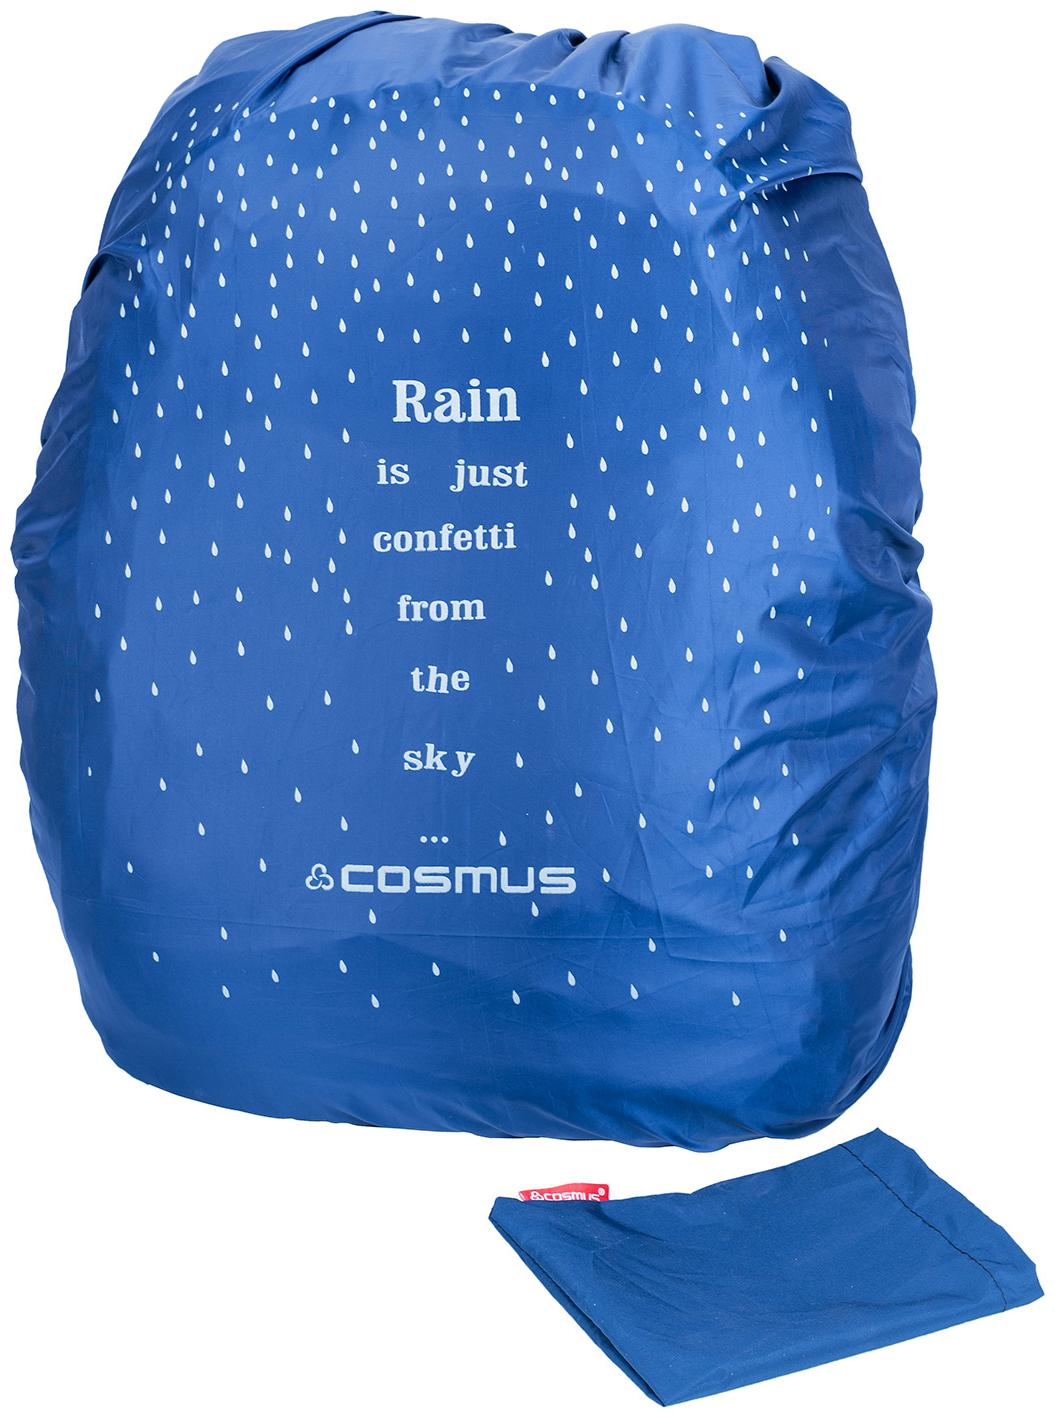 Cosmus Bag Cover Blue by Cosmus Bags